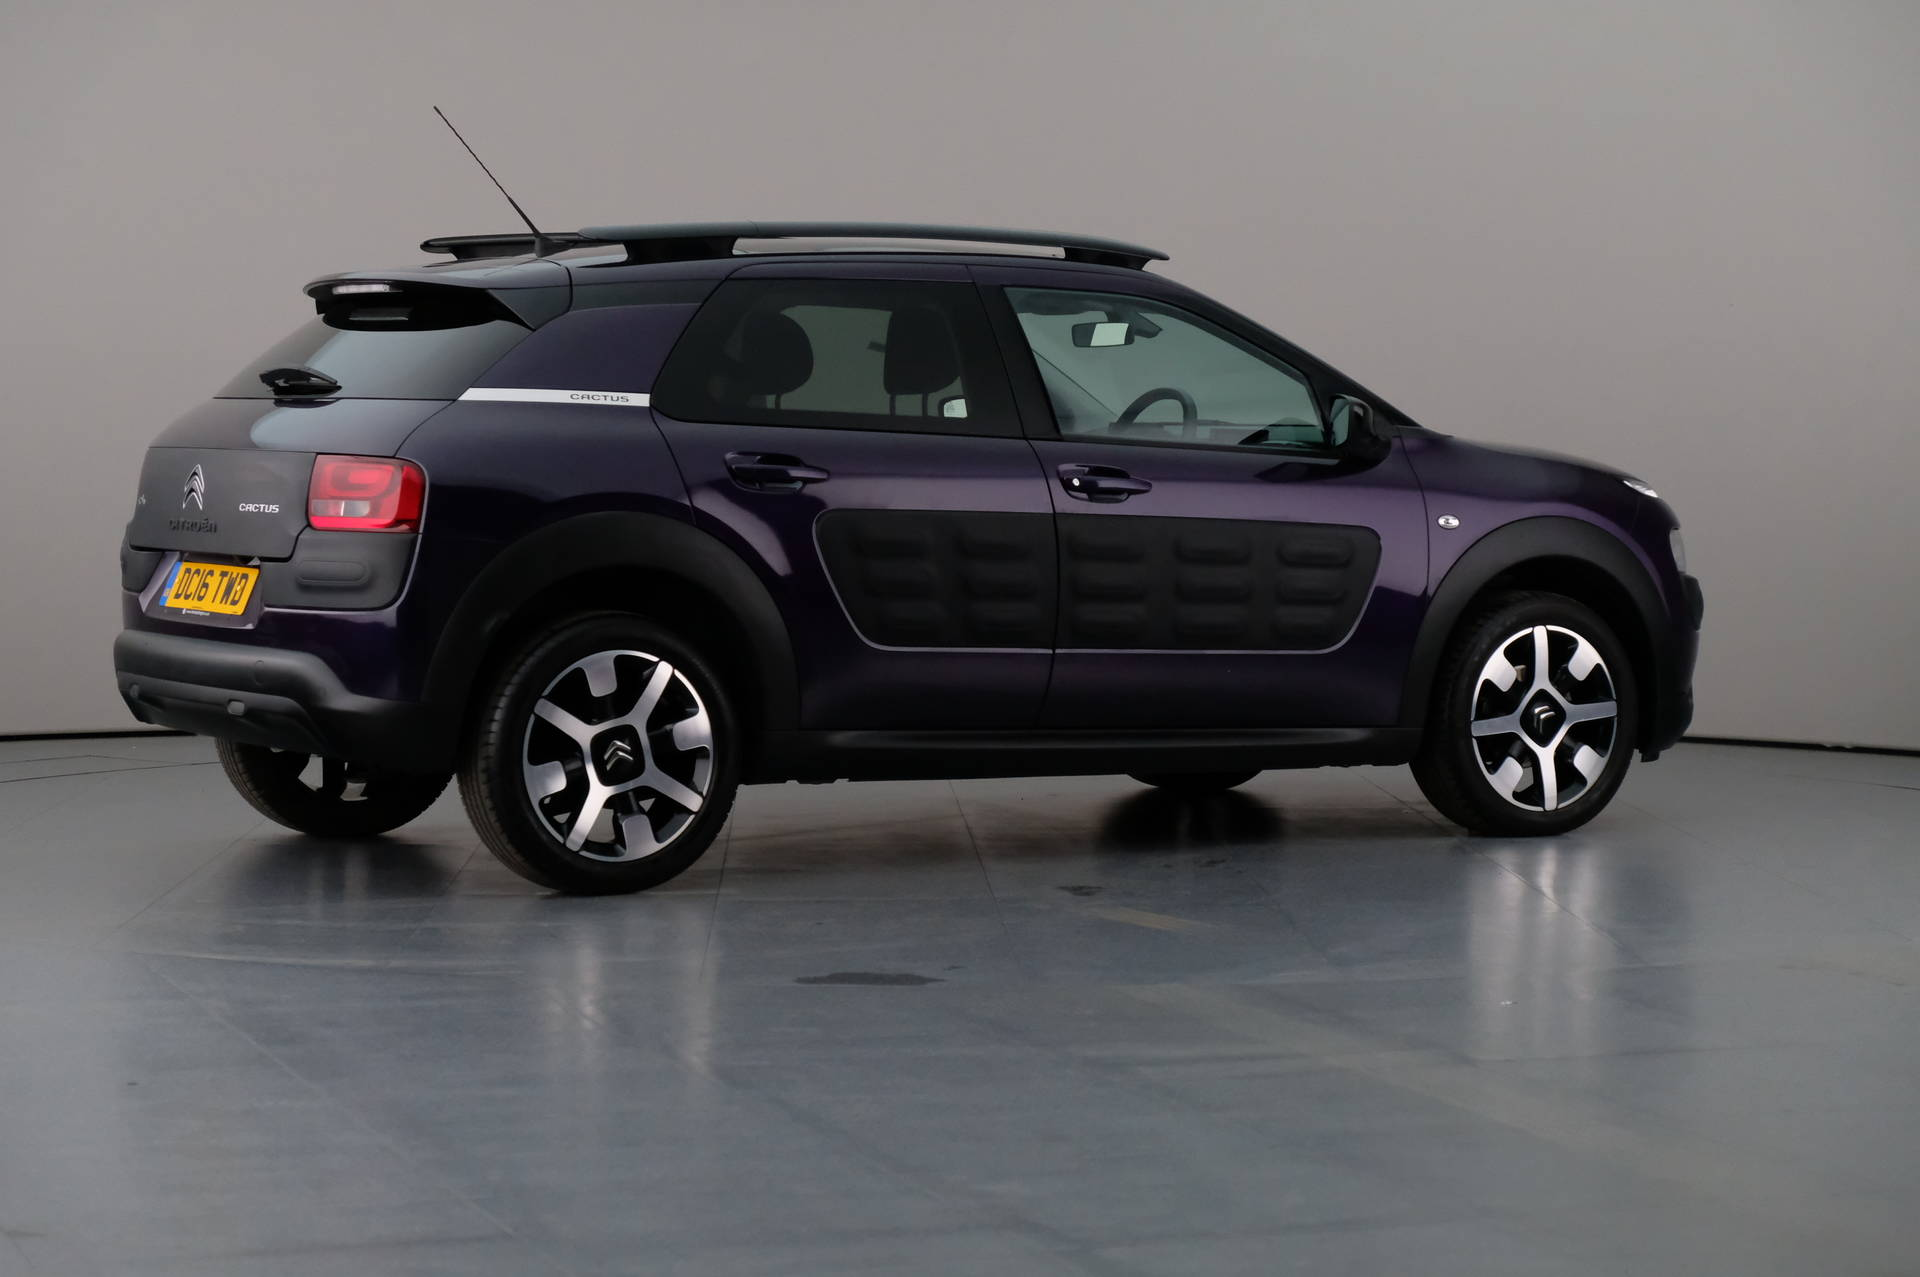 Citroën C4 Cactus 1.6 Blue HDi Flair Edition 5dr, 360-image28